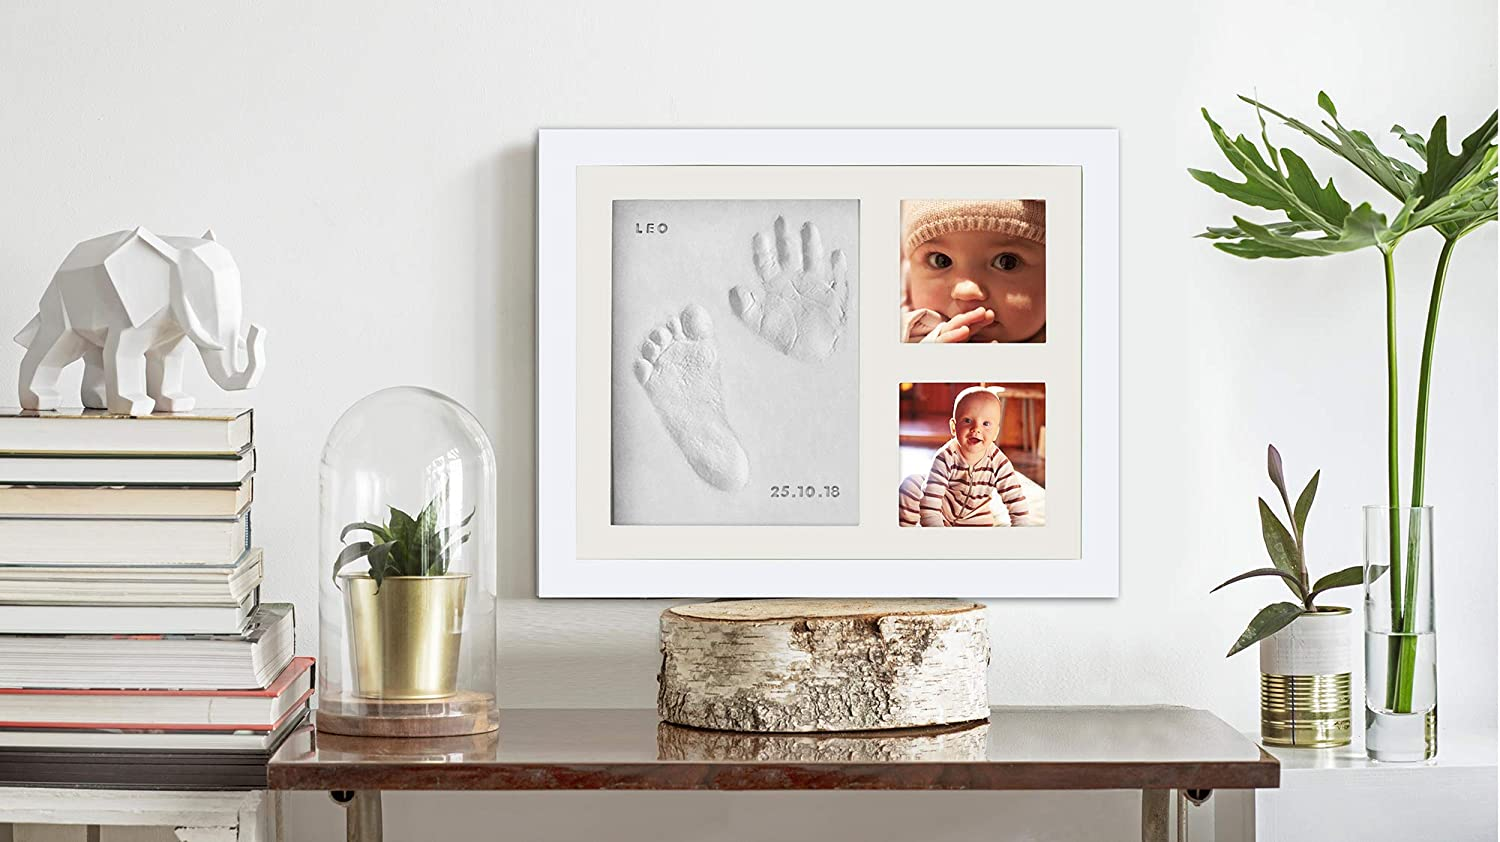 for Baby Girls /& Boys Personalized Gift for Showers Baby Hand /& Footprint Photo Frame Kit by Kubai Registries /& More Wood Frame